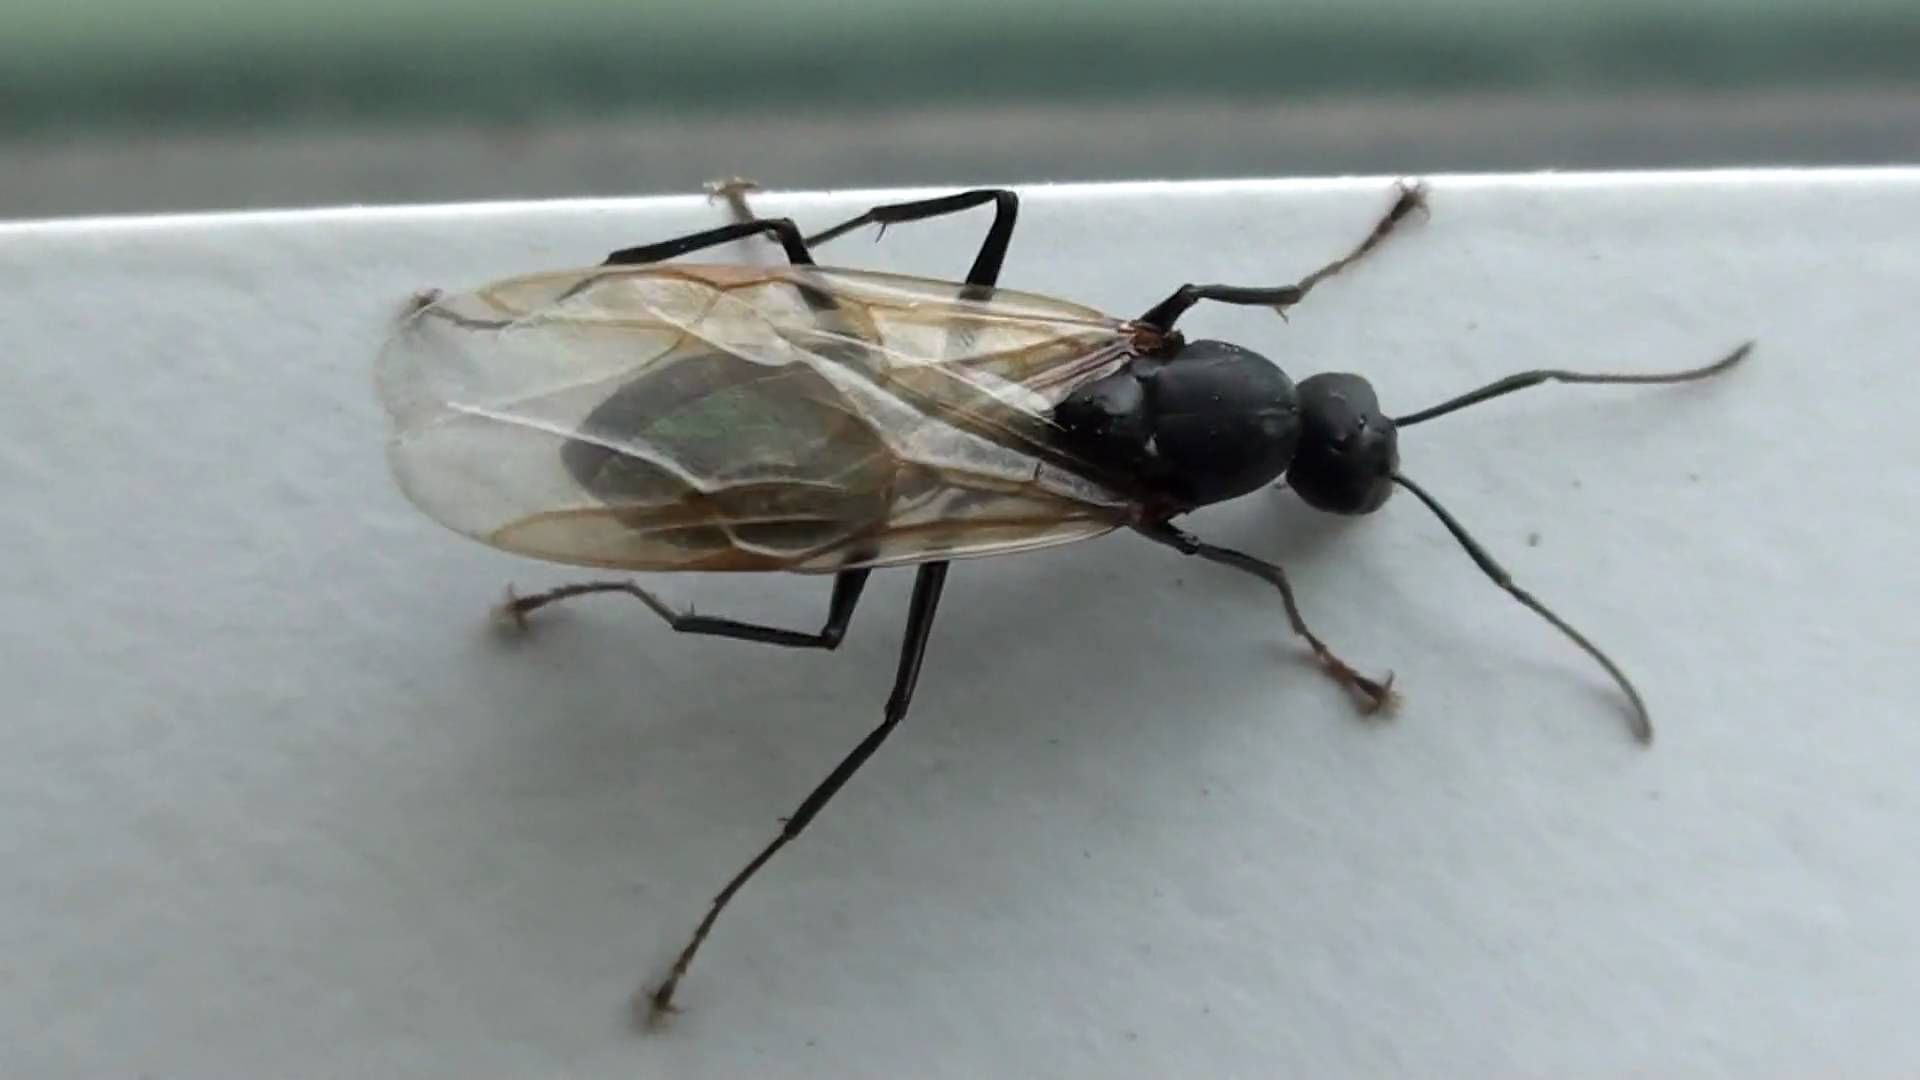 Black Carpenter Ant Formicidae Camponotus Winged Male Black Carpenter Ants Carpenter Ant Black Ants With Wings